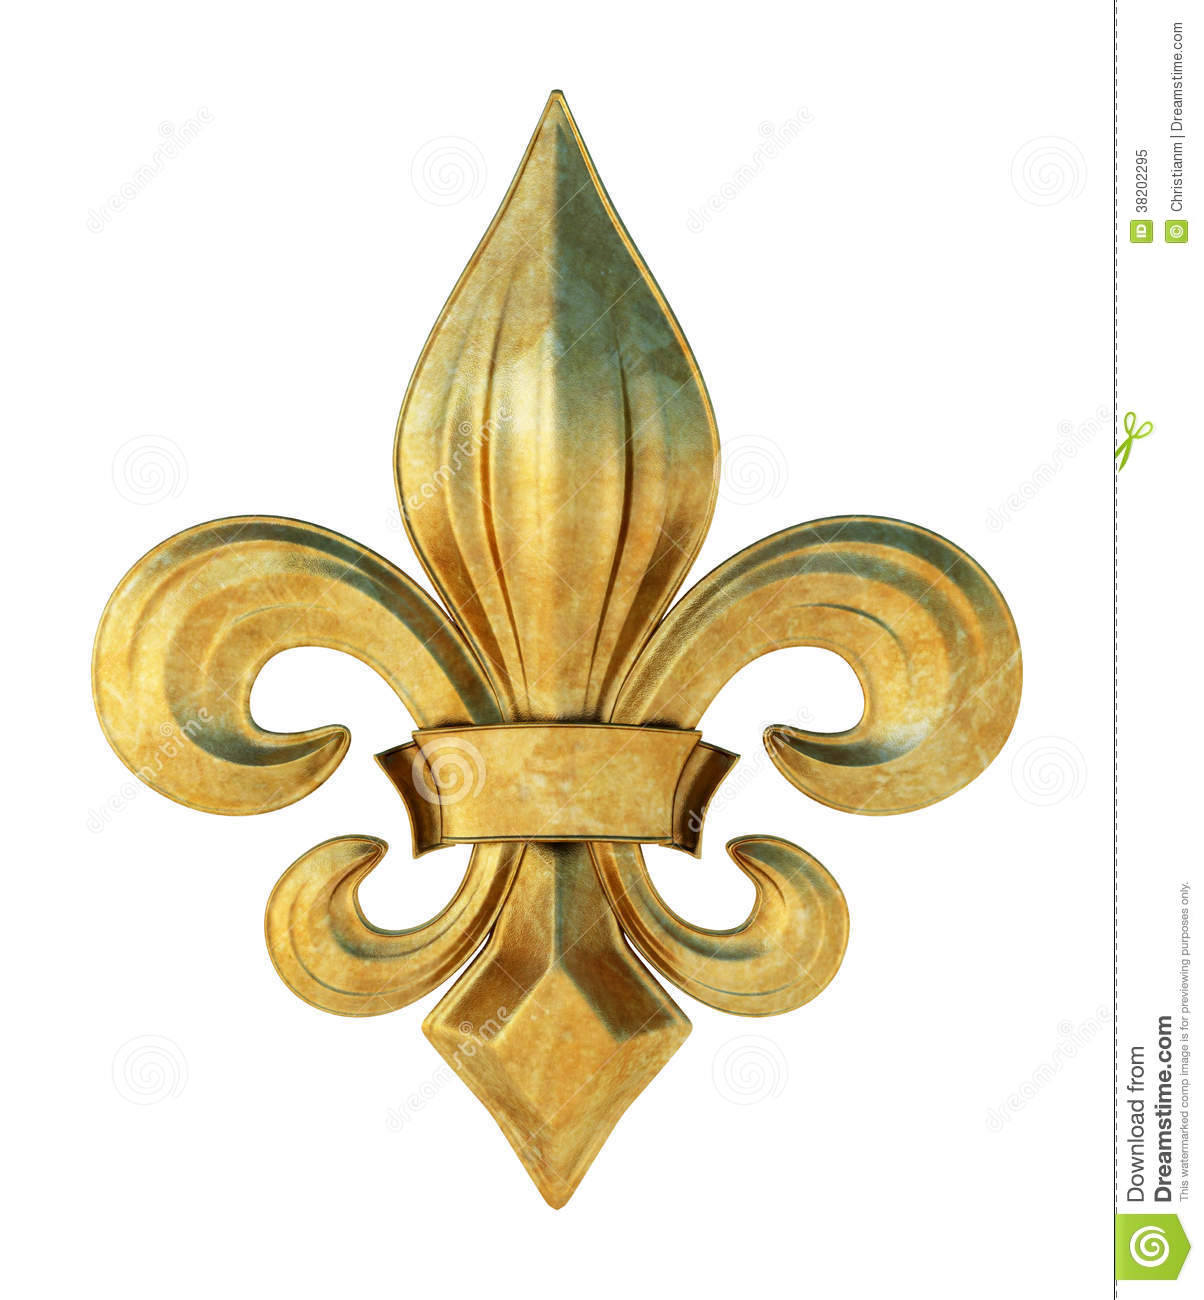 Fleur de lis stock image. Illustration of iris, ornate - 38202295